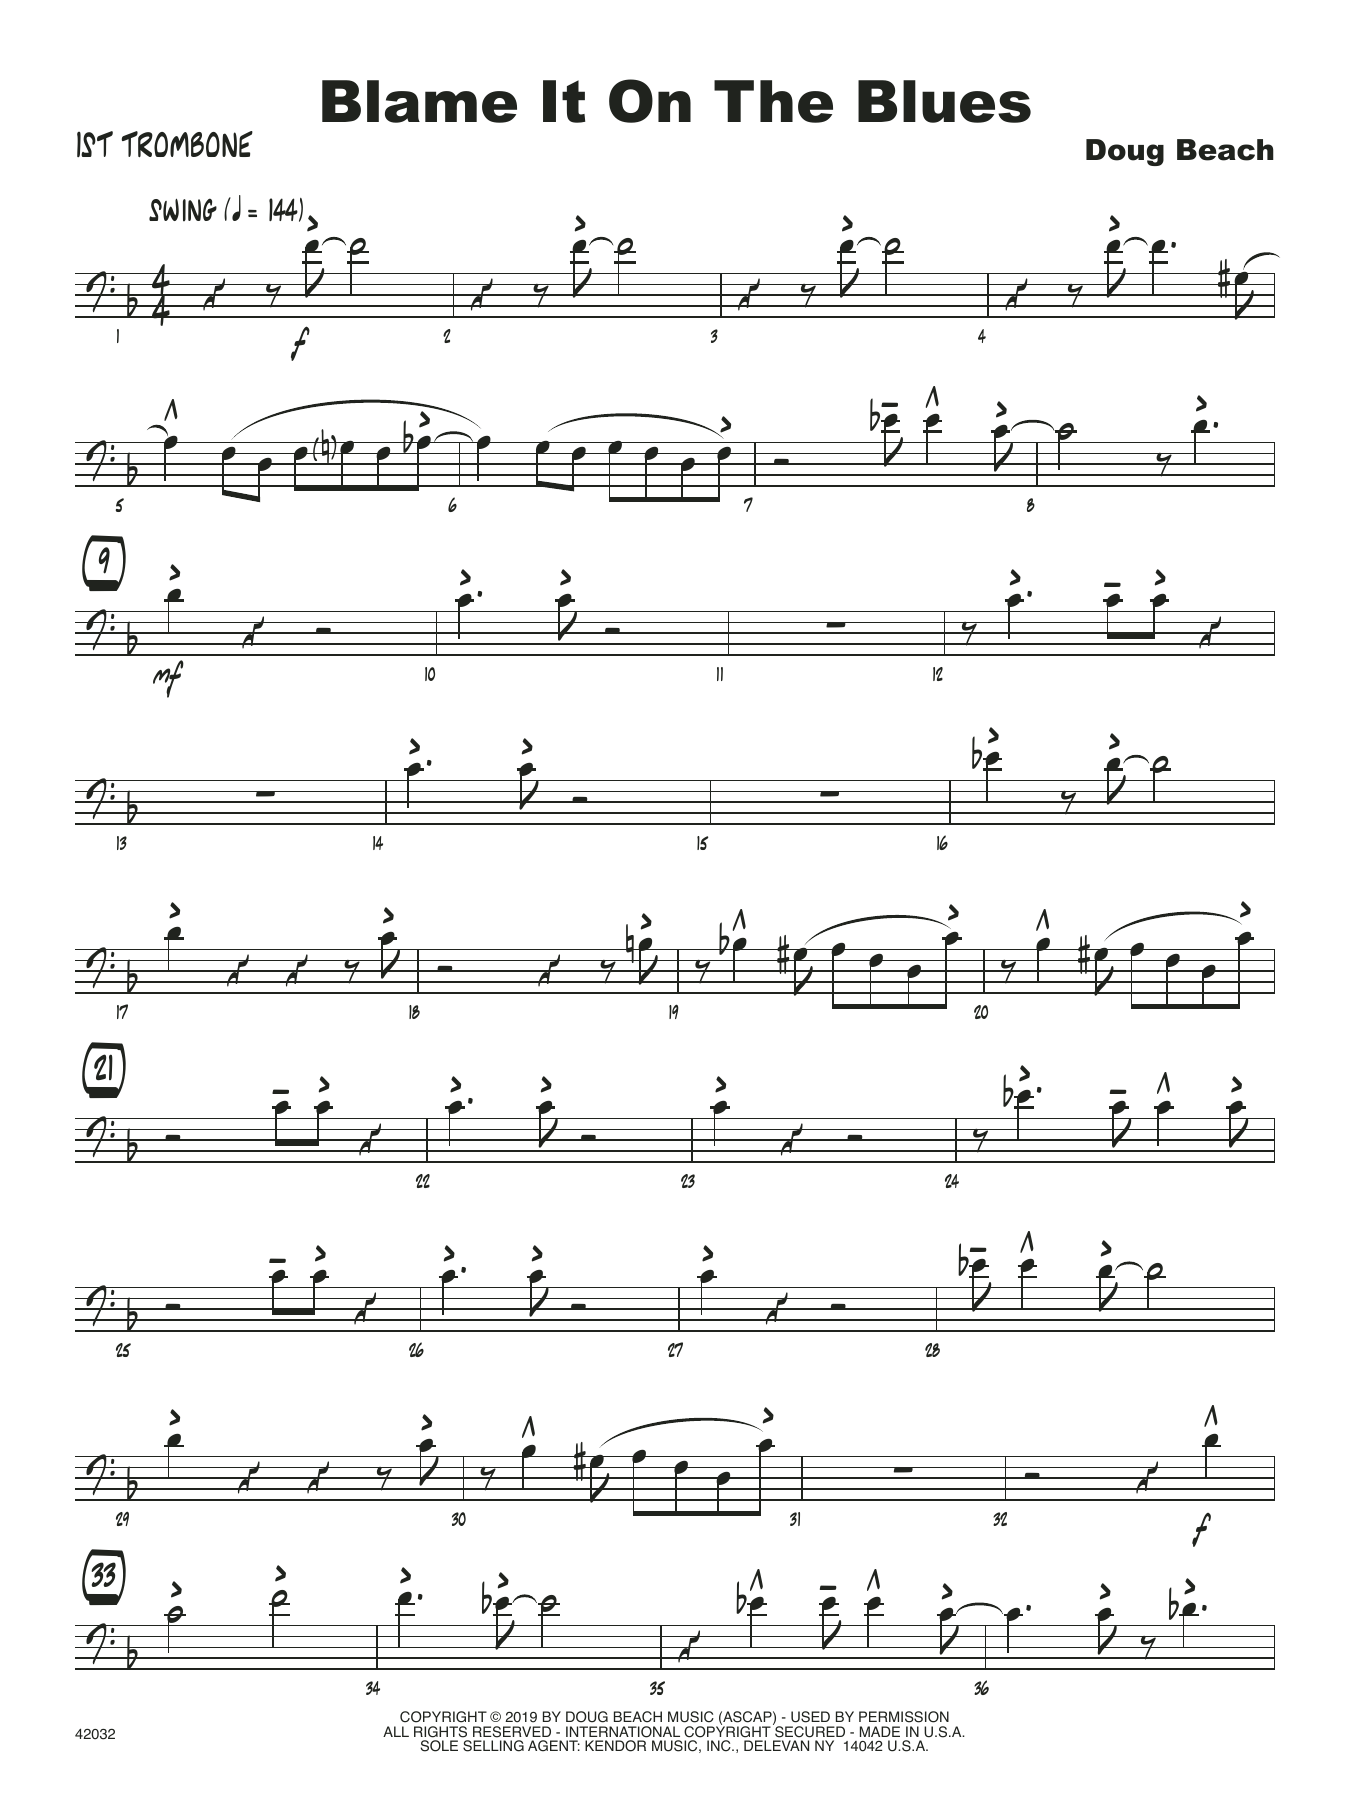 Doug Beach Blame It On The Blues - 1st Trombone sheet music notes and chords. Download Printable PDF.